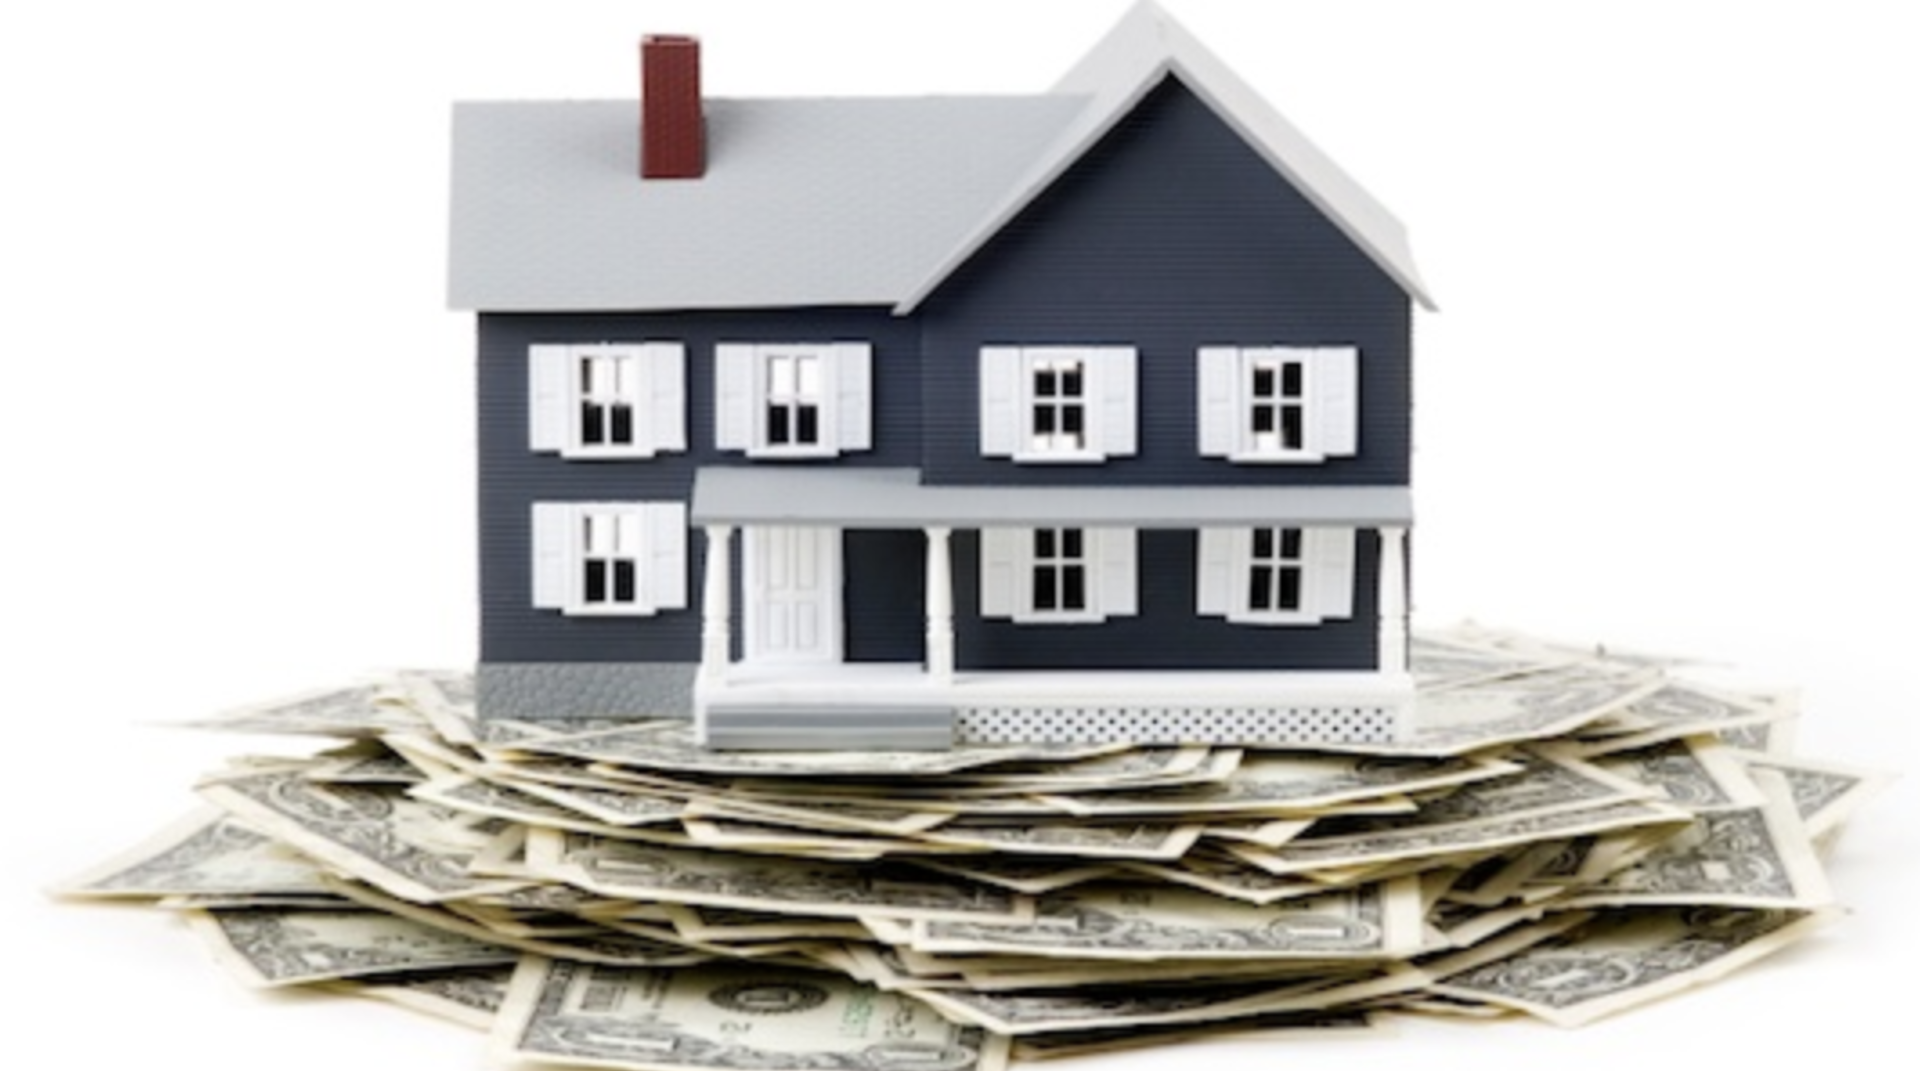 Besides Down Payment, How much cash money will I need to buy a house?